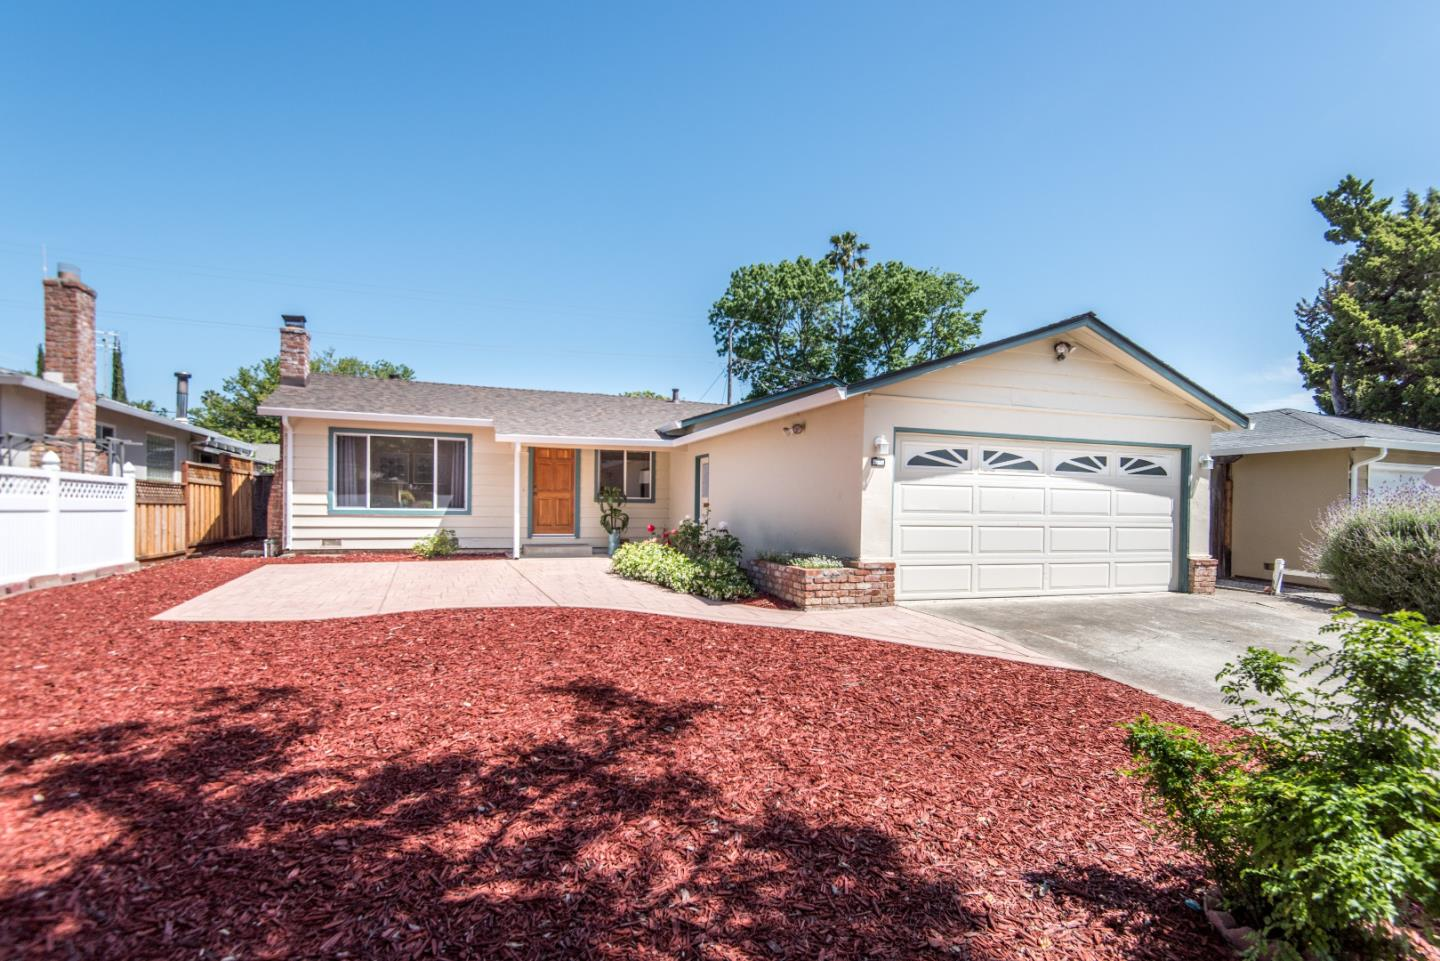 Additional photo for property listing at 4551 Grimsby Dr  SAN JOSE, CALIFORNIA 95130